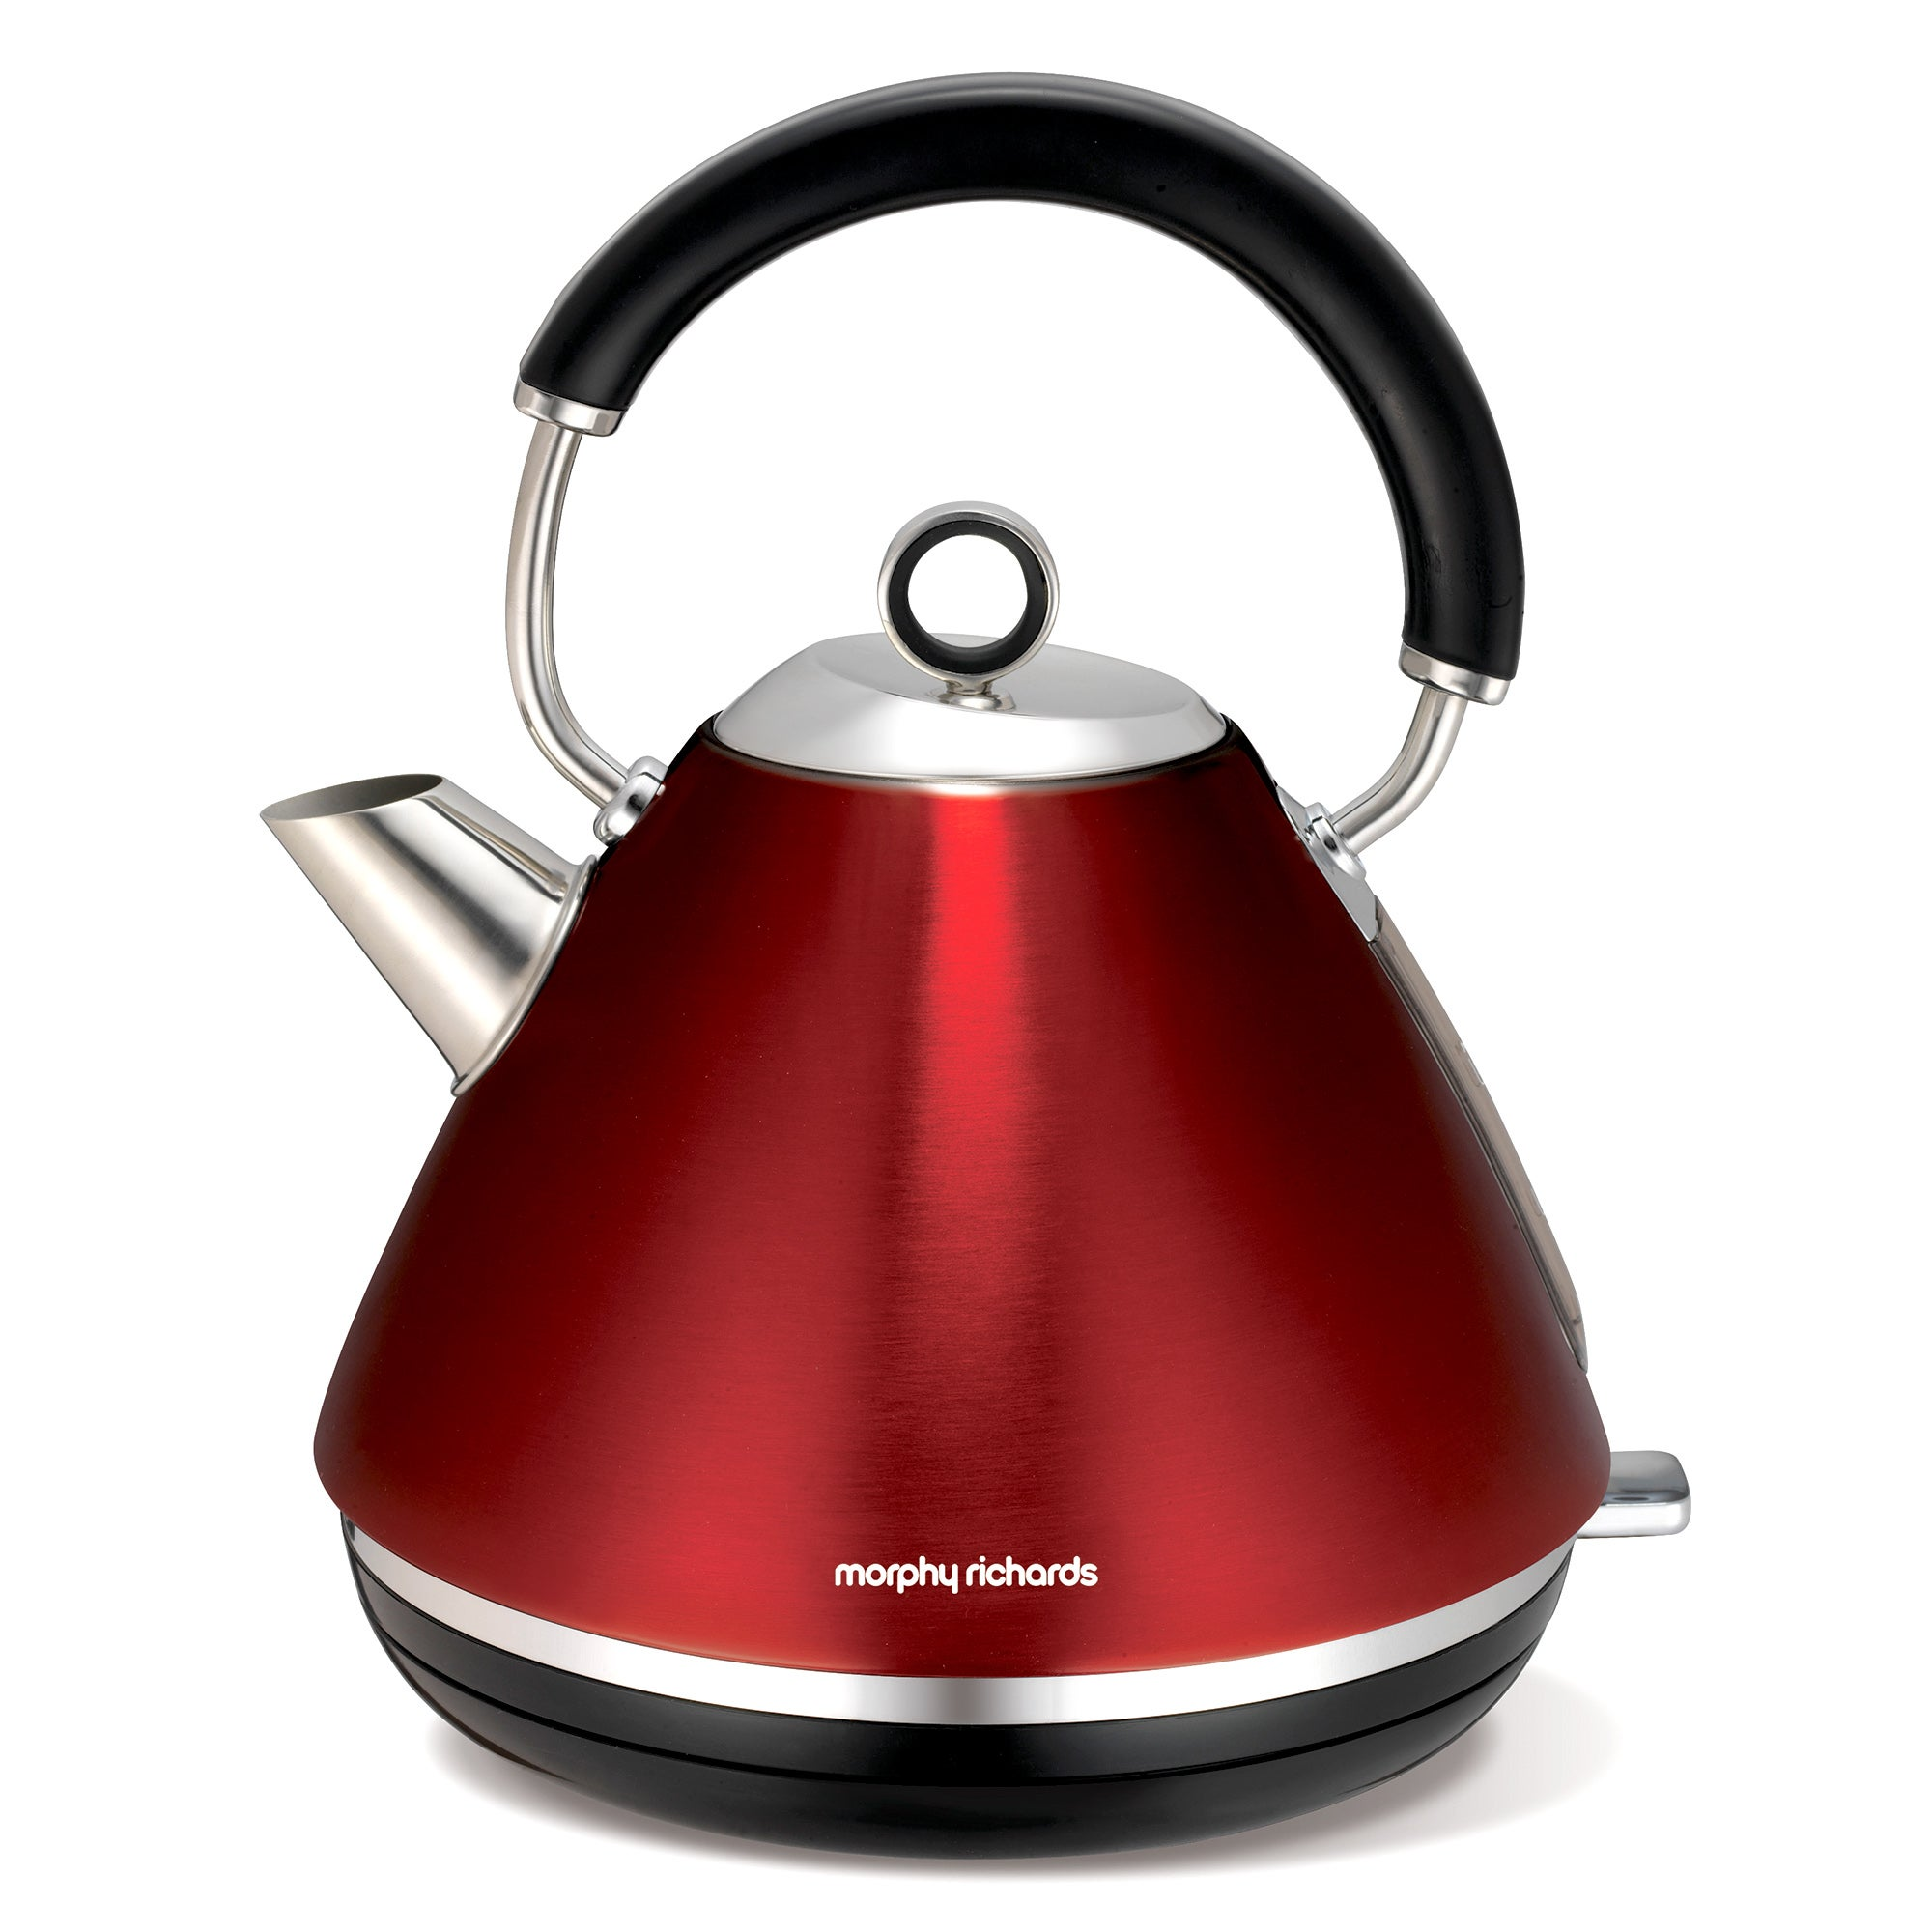 Morphy Richards Accents 102004 Red Traditional Kettle